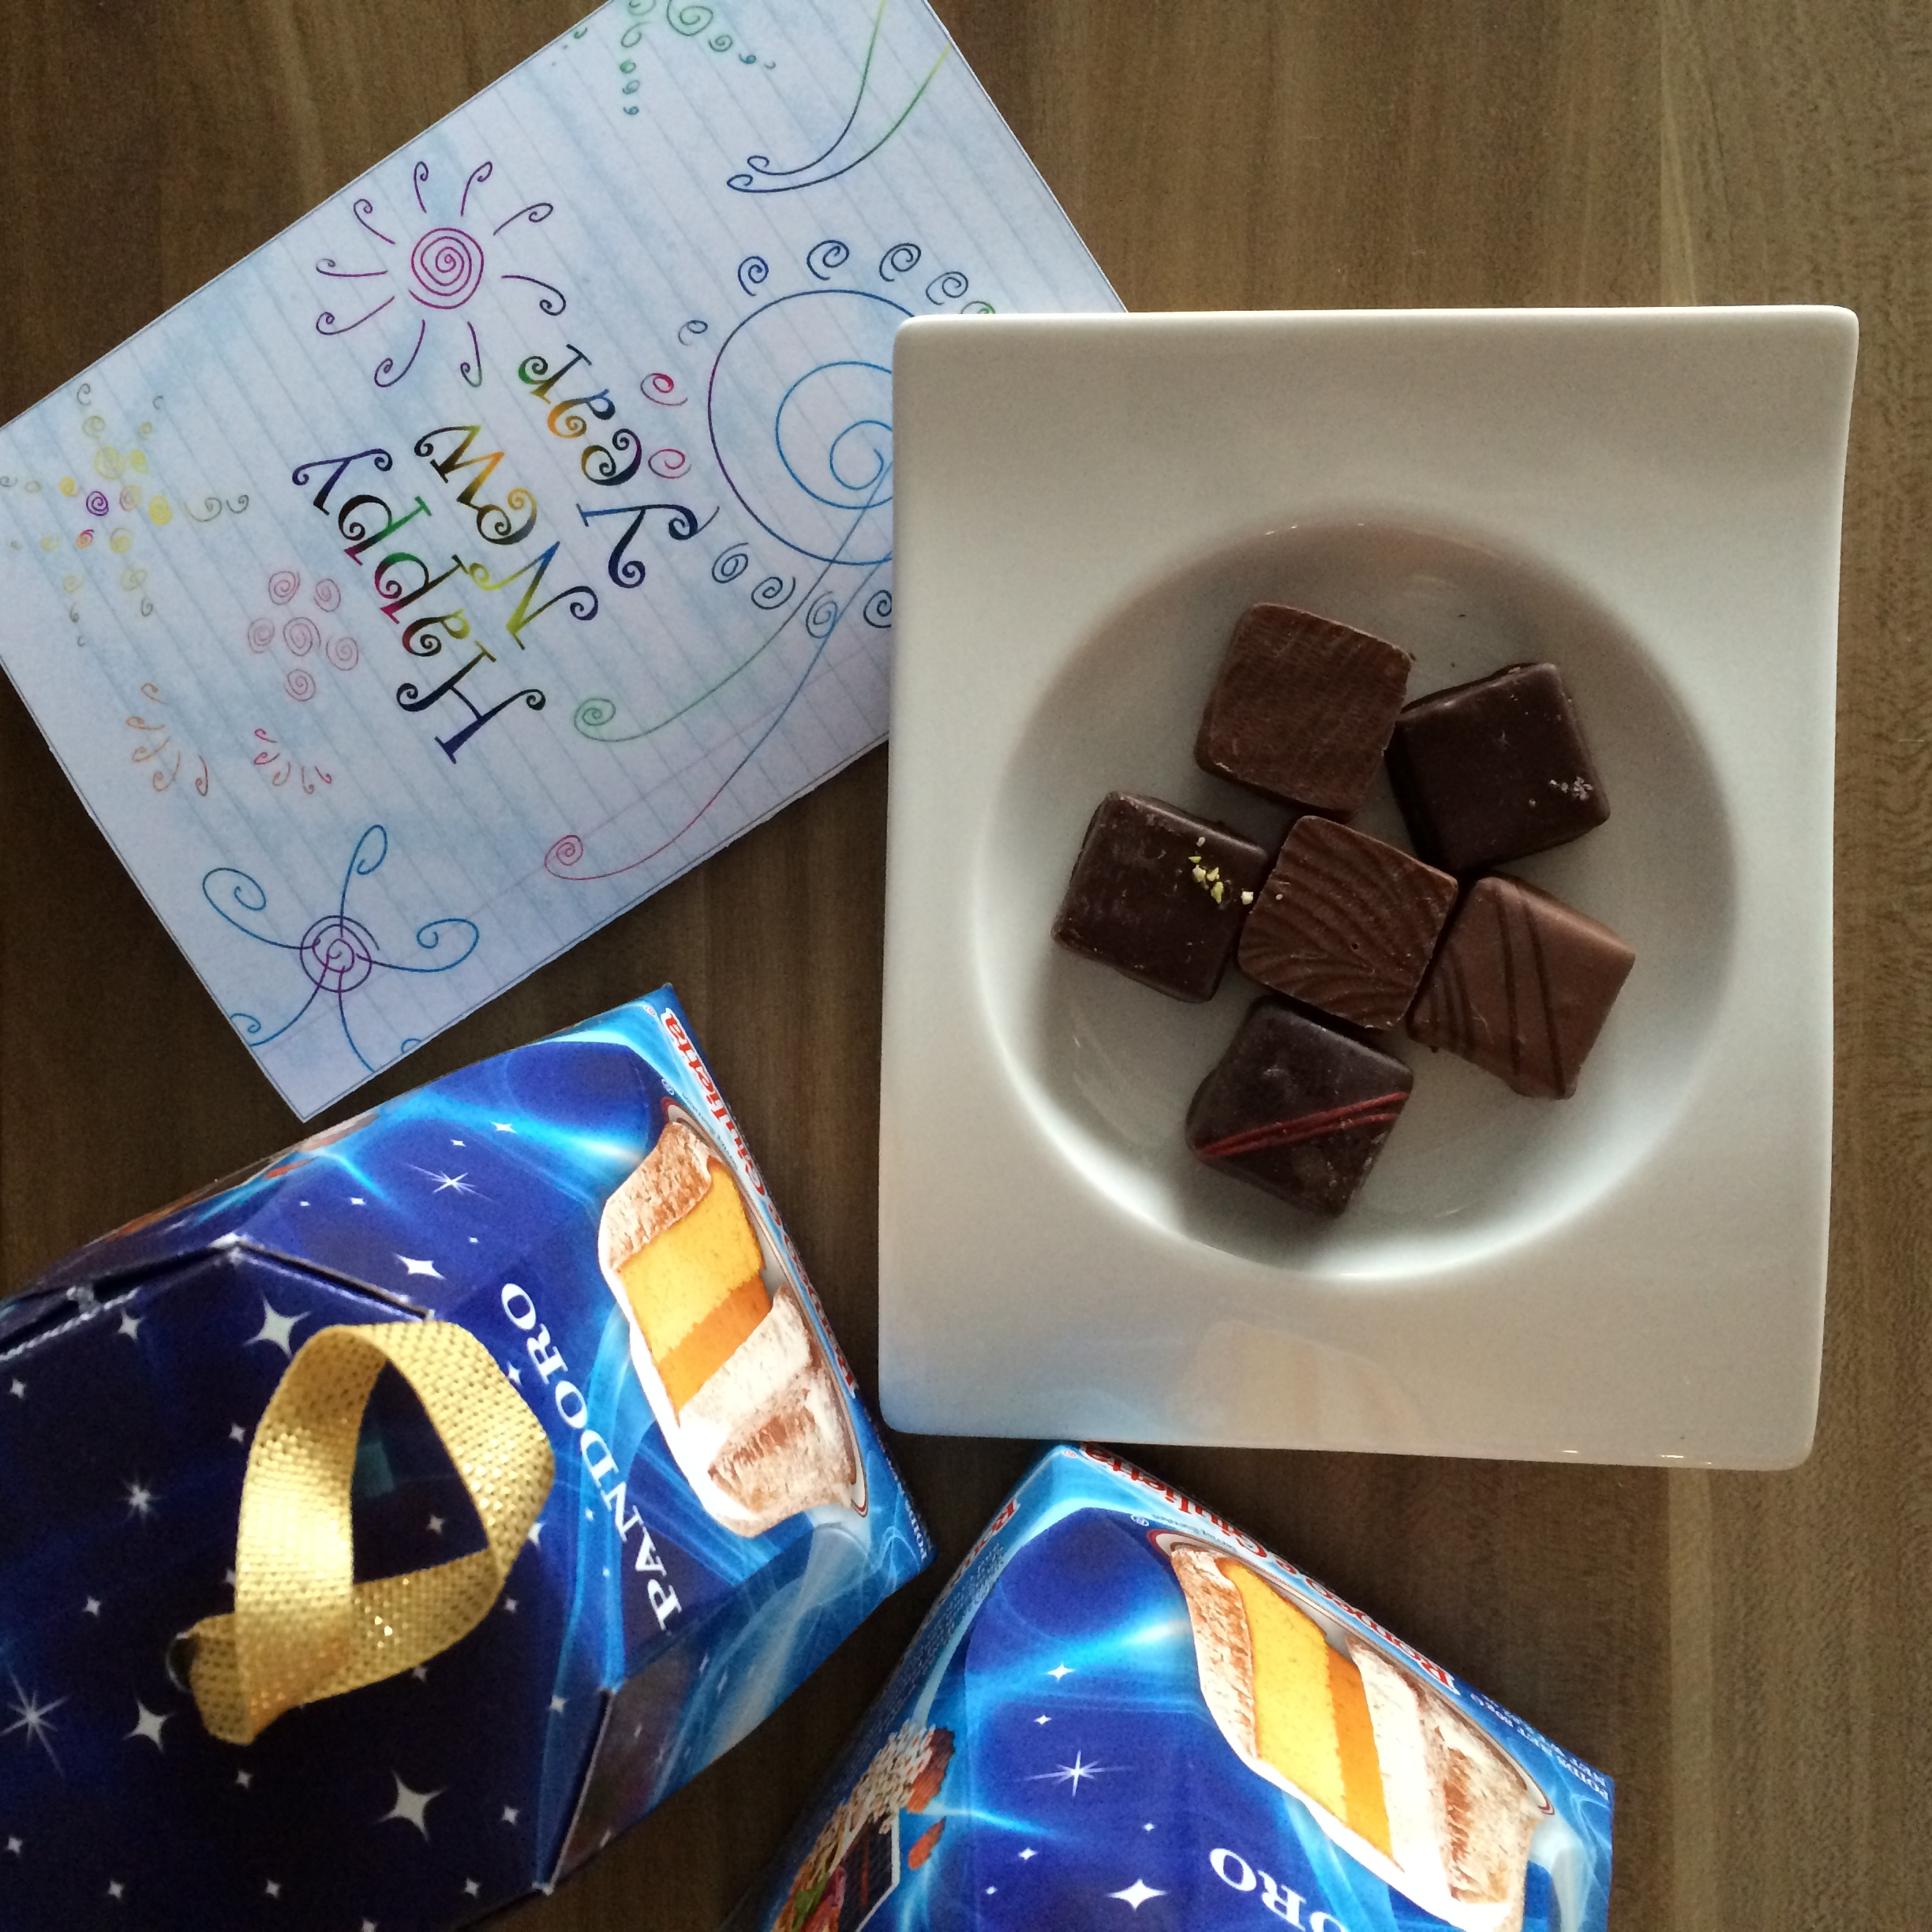 Traditional sweet treats and a sentimental card.